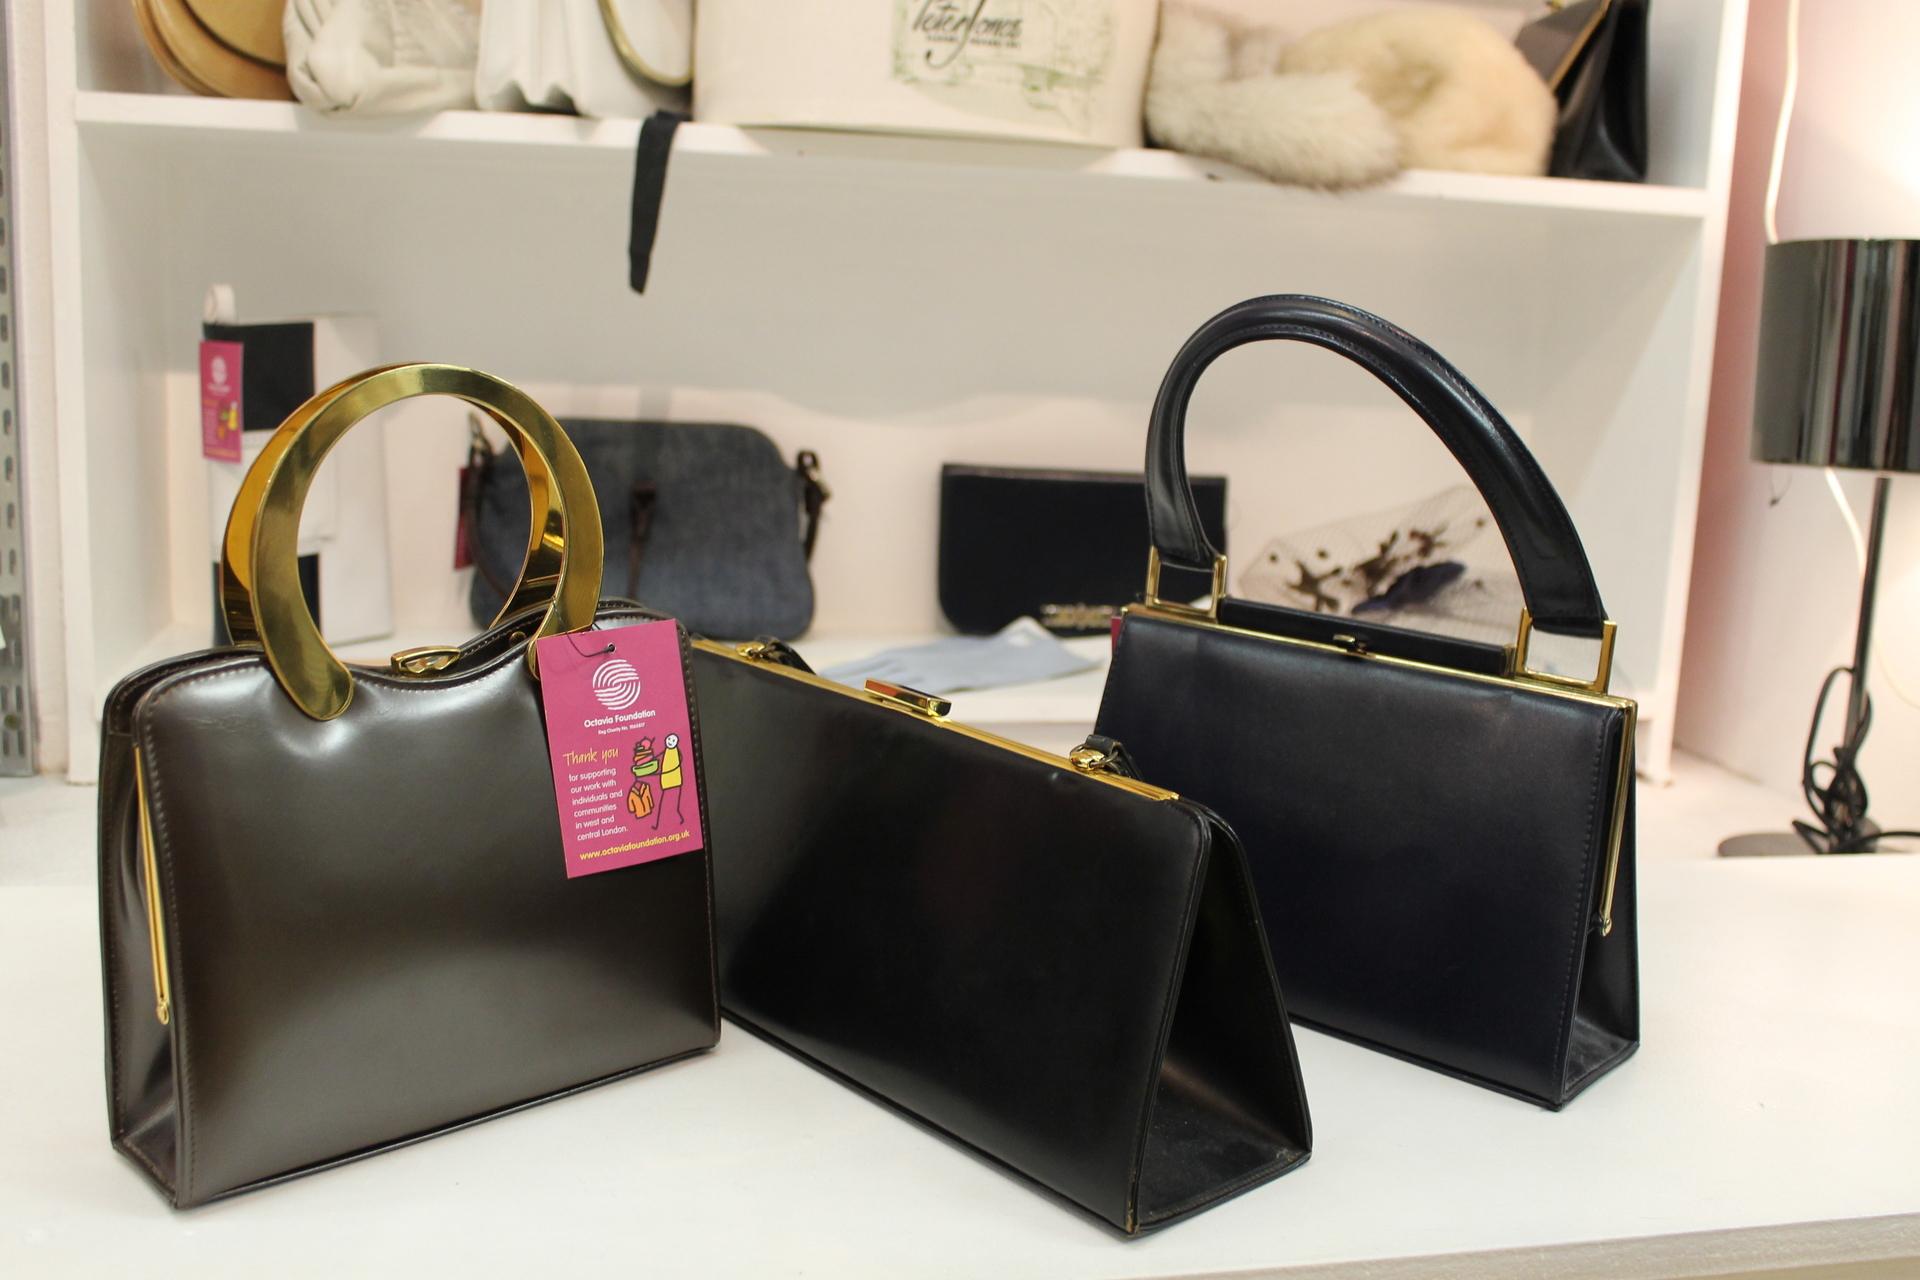 Collection of chic vintage leather handbags from   35 at Brompton Road